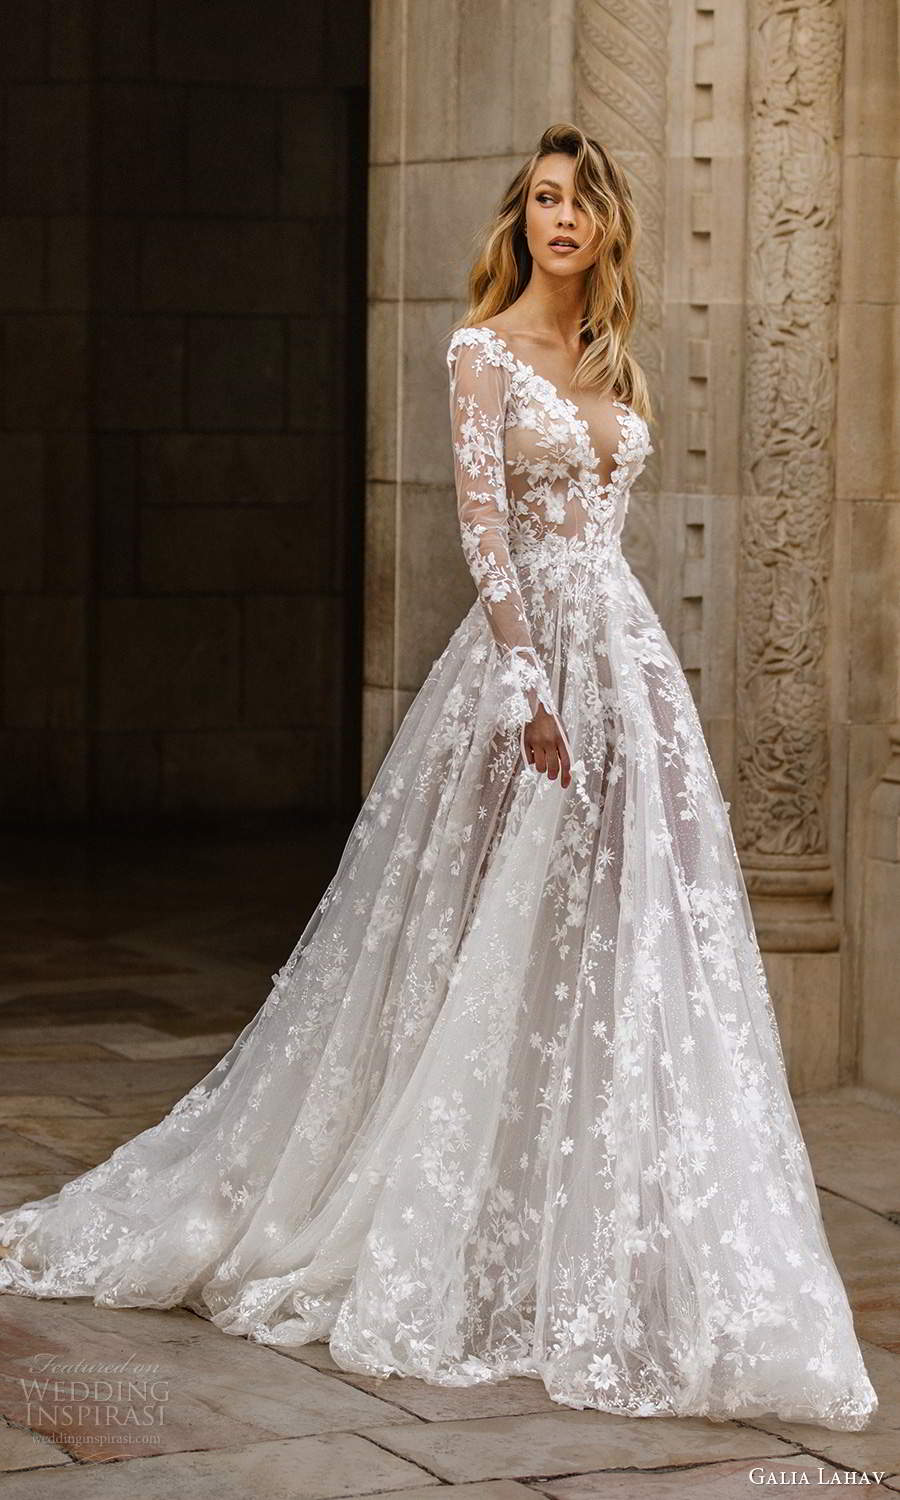 galia lahav fall 2020 gala bridal illusion long sleeves plunging v neckline fully embellished lace a line ball gown wedding dress chapel train (1) mv